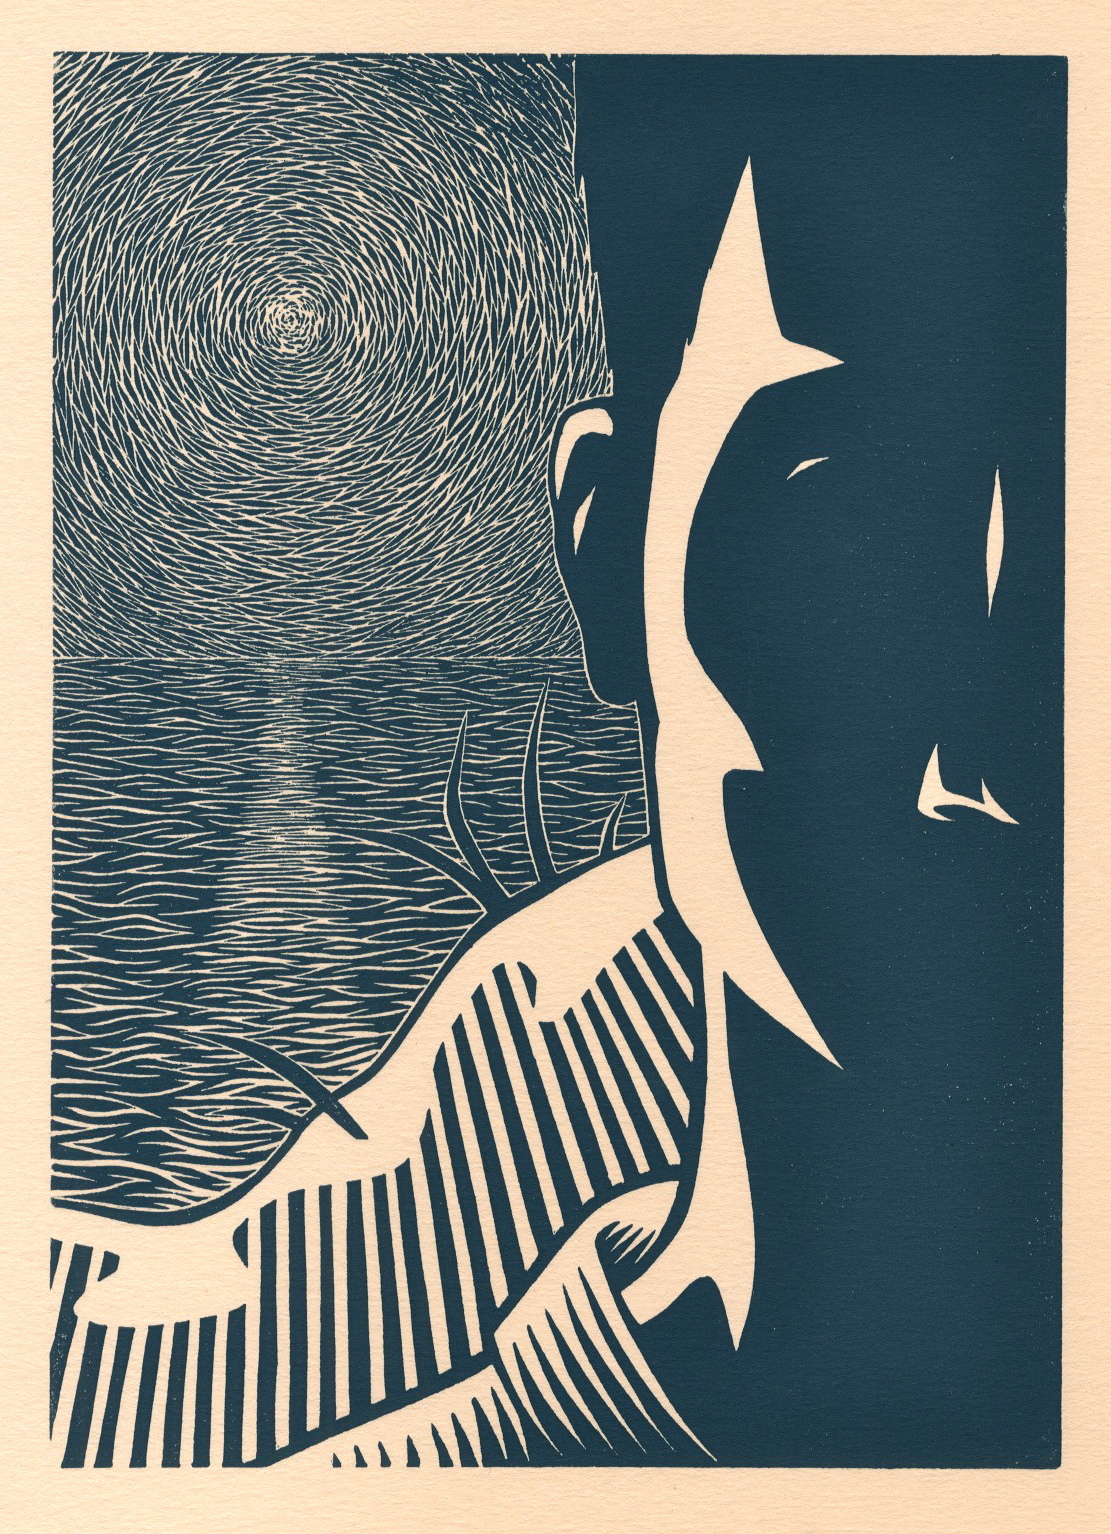 The Outsider by Albert Camus (Book Cover) . Linocut. 2010. 7x10""